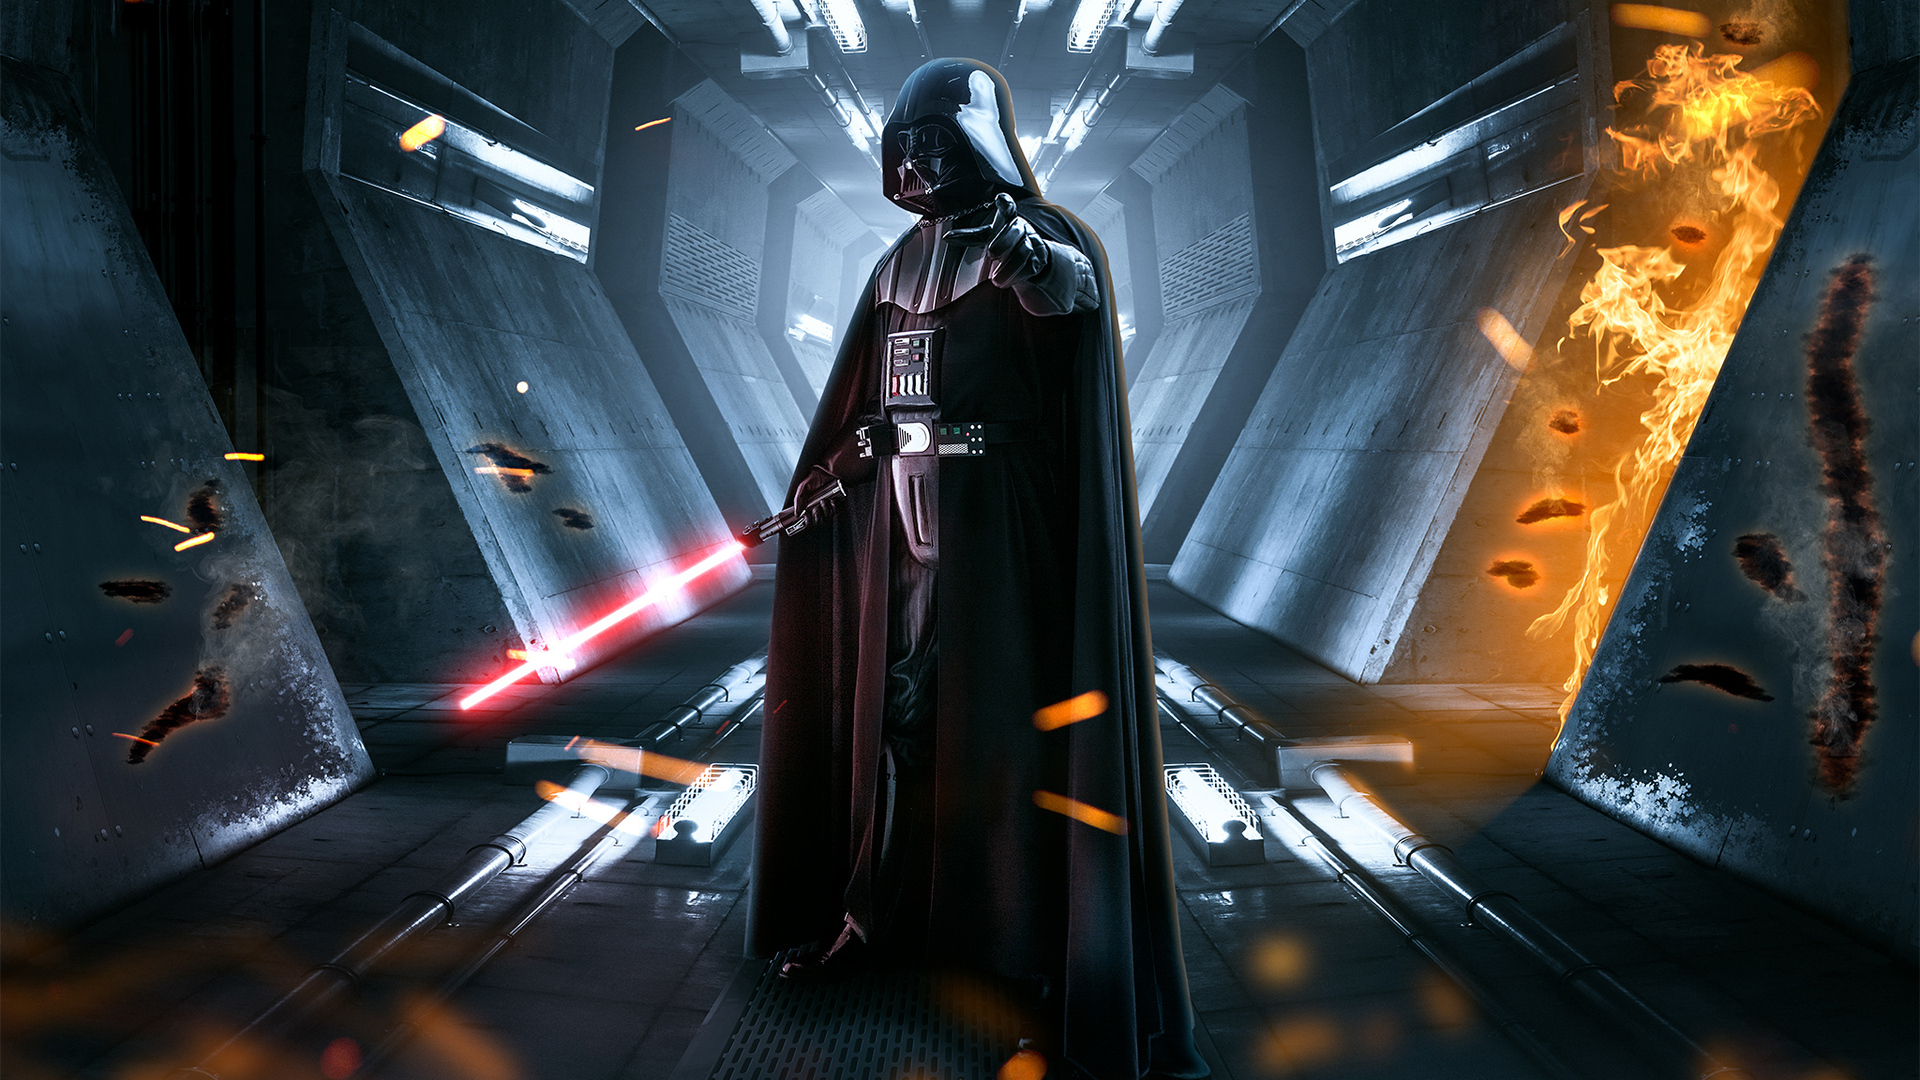 1920x1080 New Darth Vader Laptop Full Hd 1080p Hd 4k Wallpapers Images Backgrounds Photos And Pictures